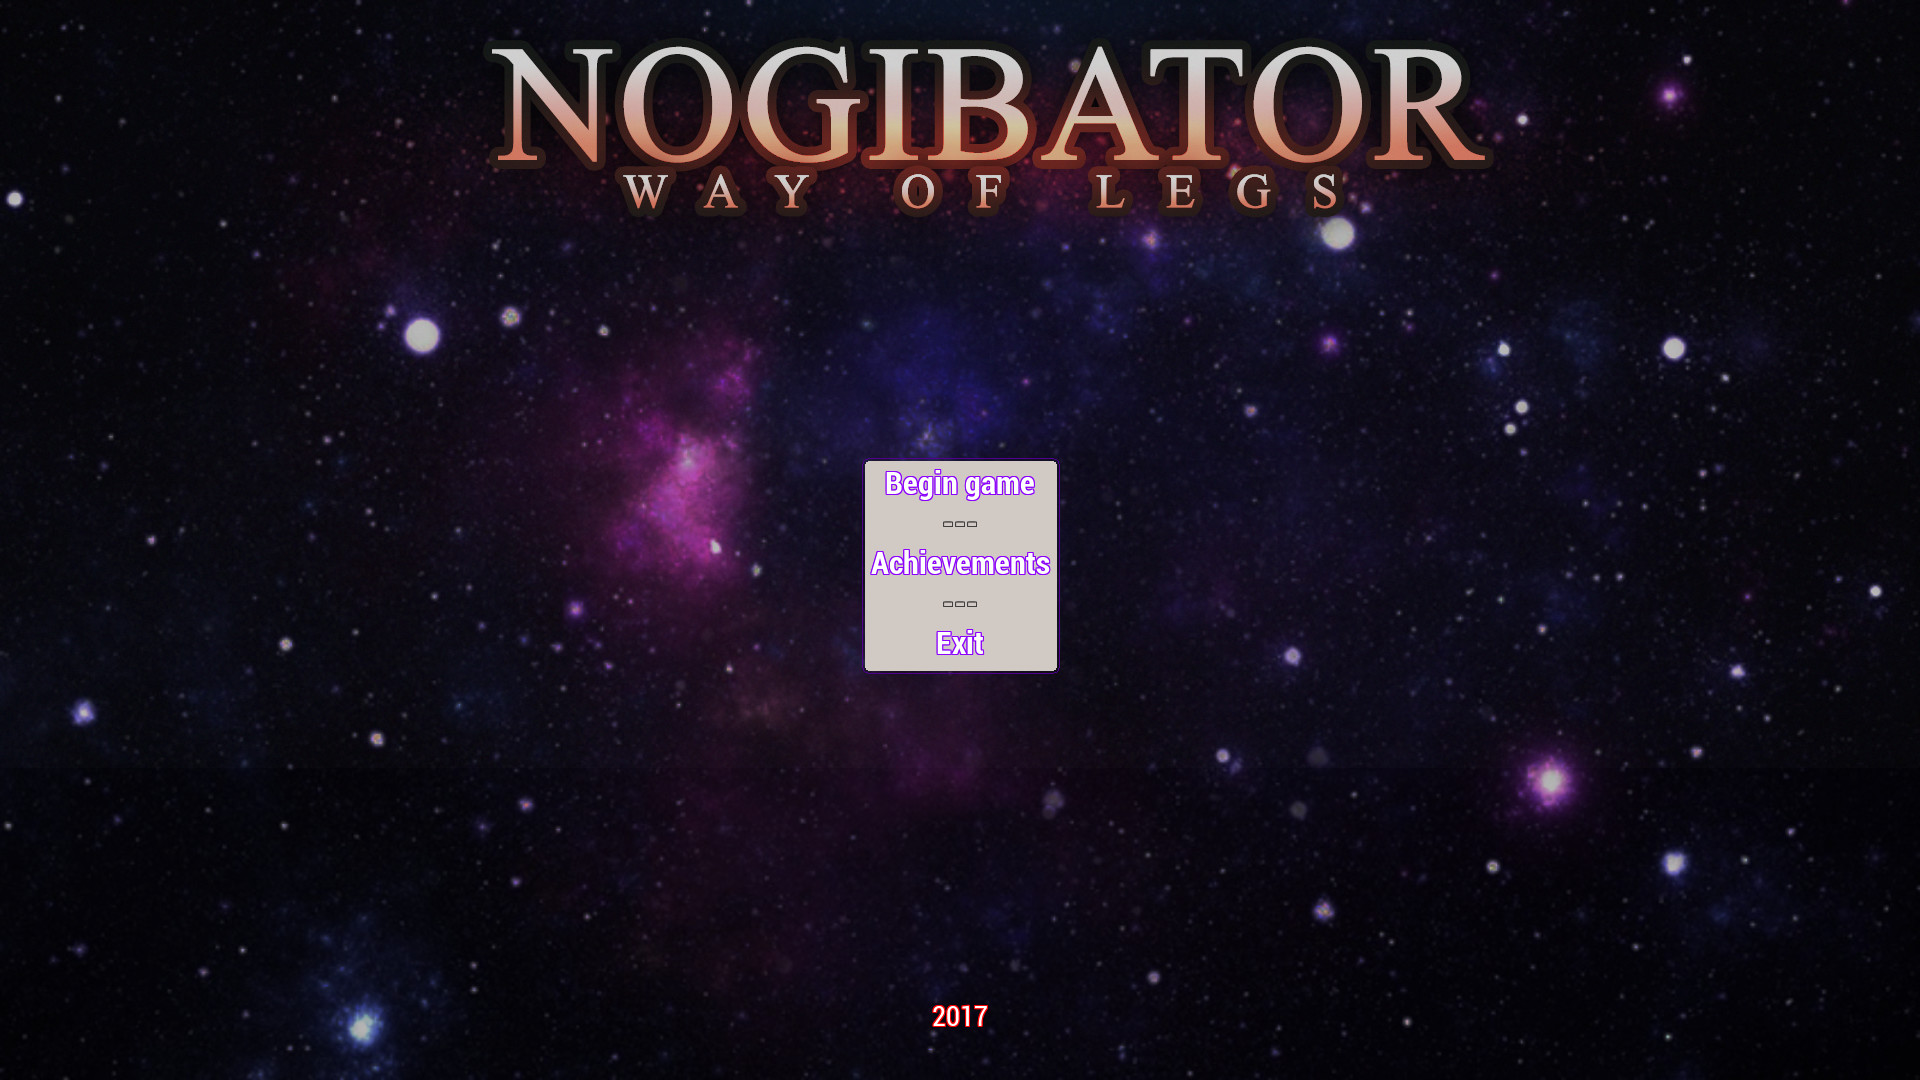 Nogibator: Way Of Legs screenshot